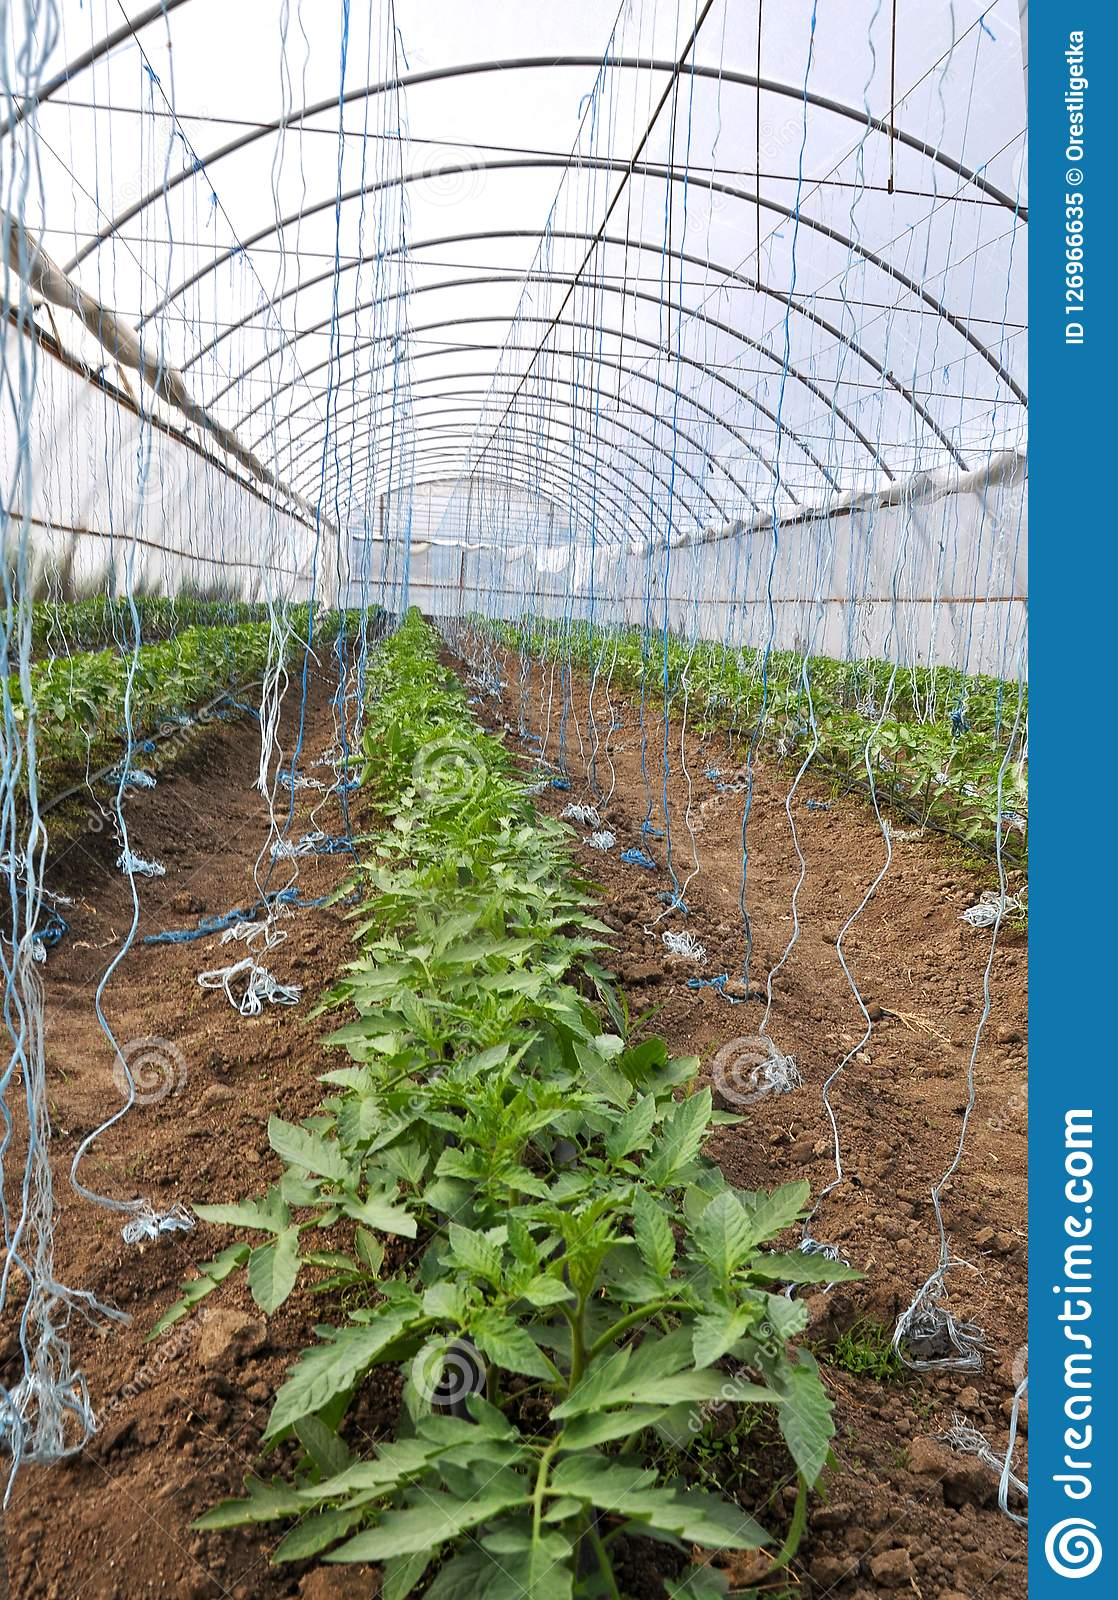 Swell Polycarbonate Greenhouse For Growing Vegetables Stock Image Download Free Architecture Designs Ogrambritishbridgeorg